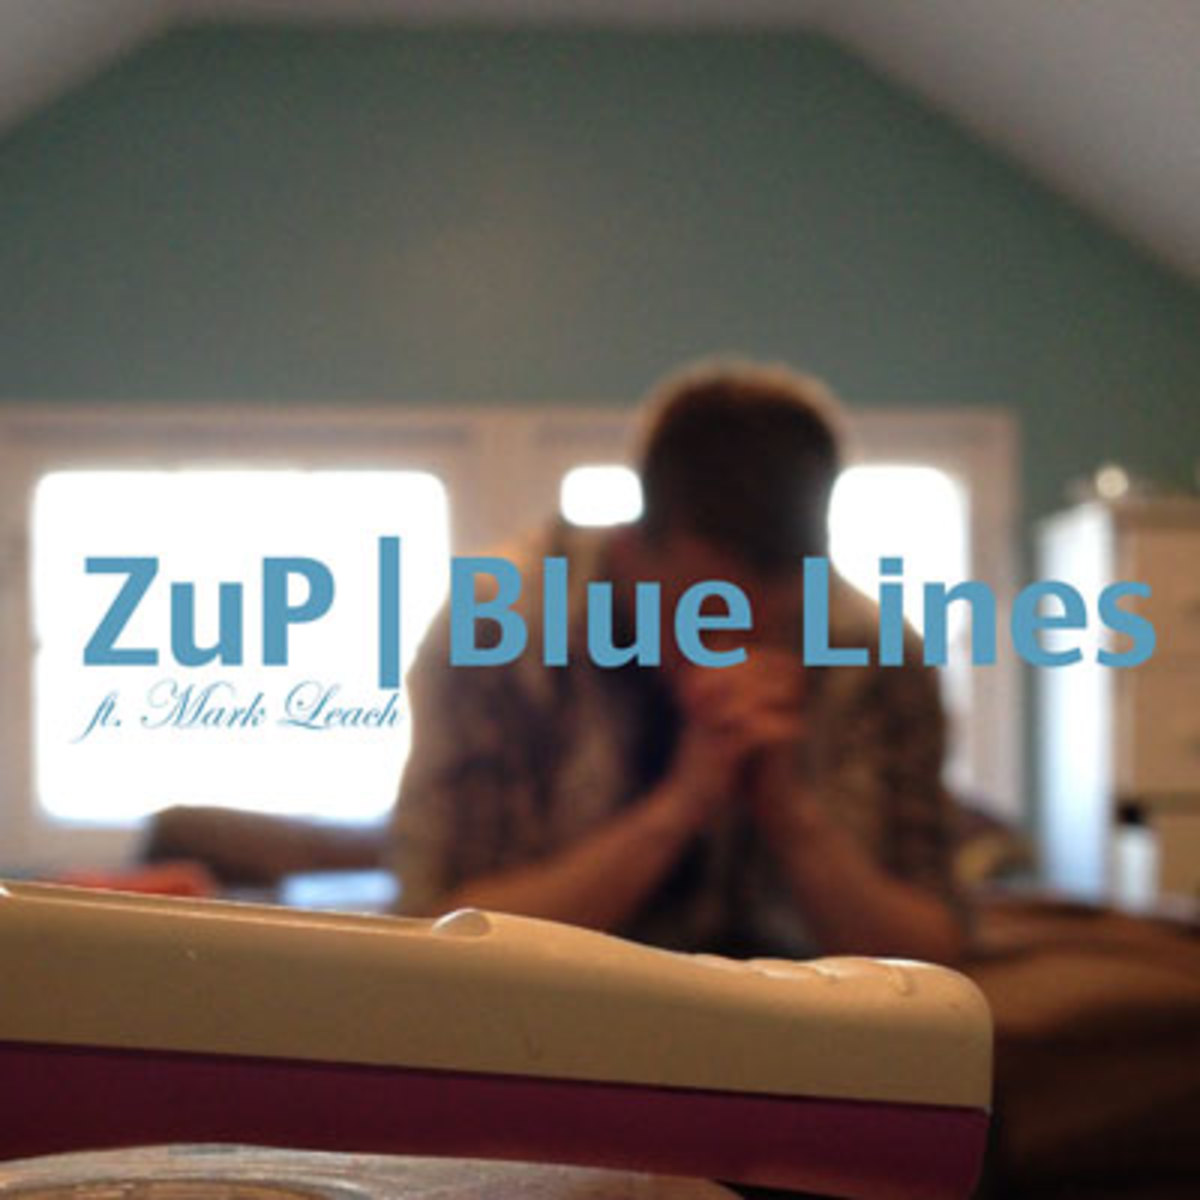 zup-bluelines.jpg